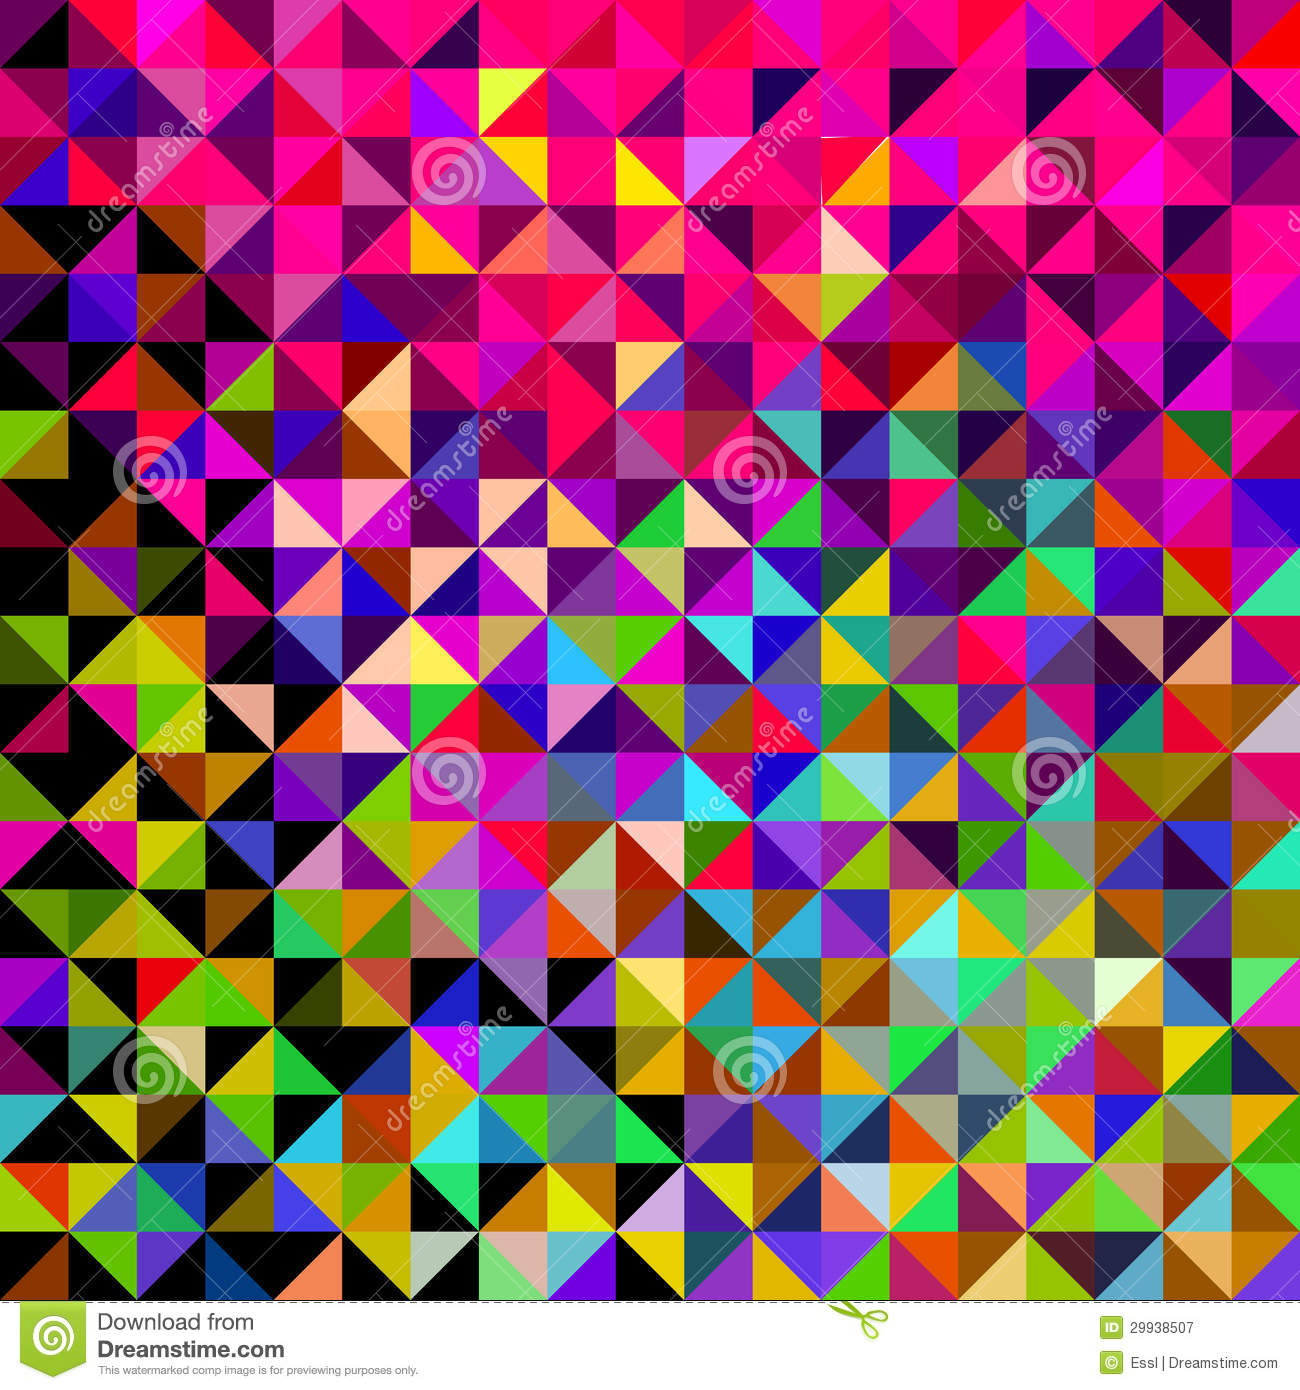 abstract geometric colorful background - photo #11